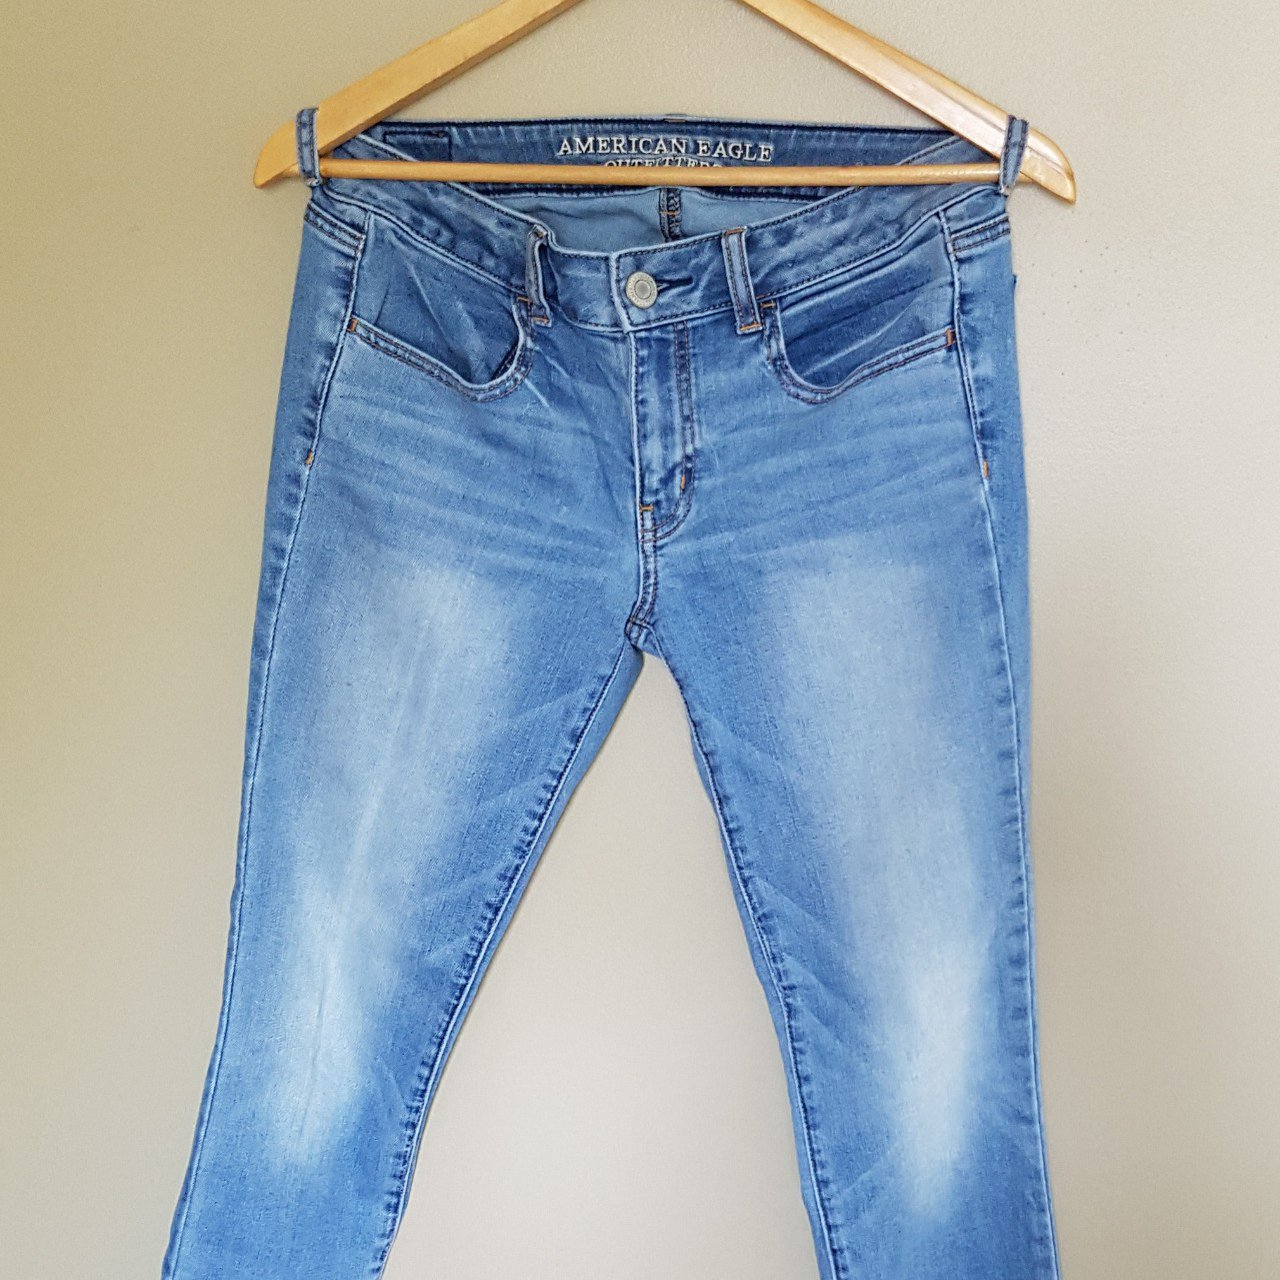 af335306a0c @katharingrace. 2 years ago. London, Middlesex County, Canada. American  Eagle skinny jeans, light blue ...